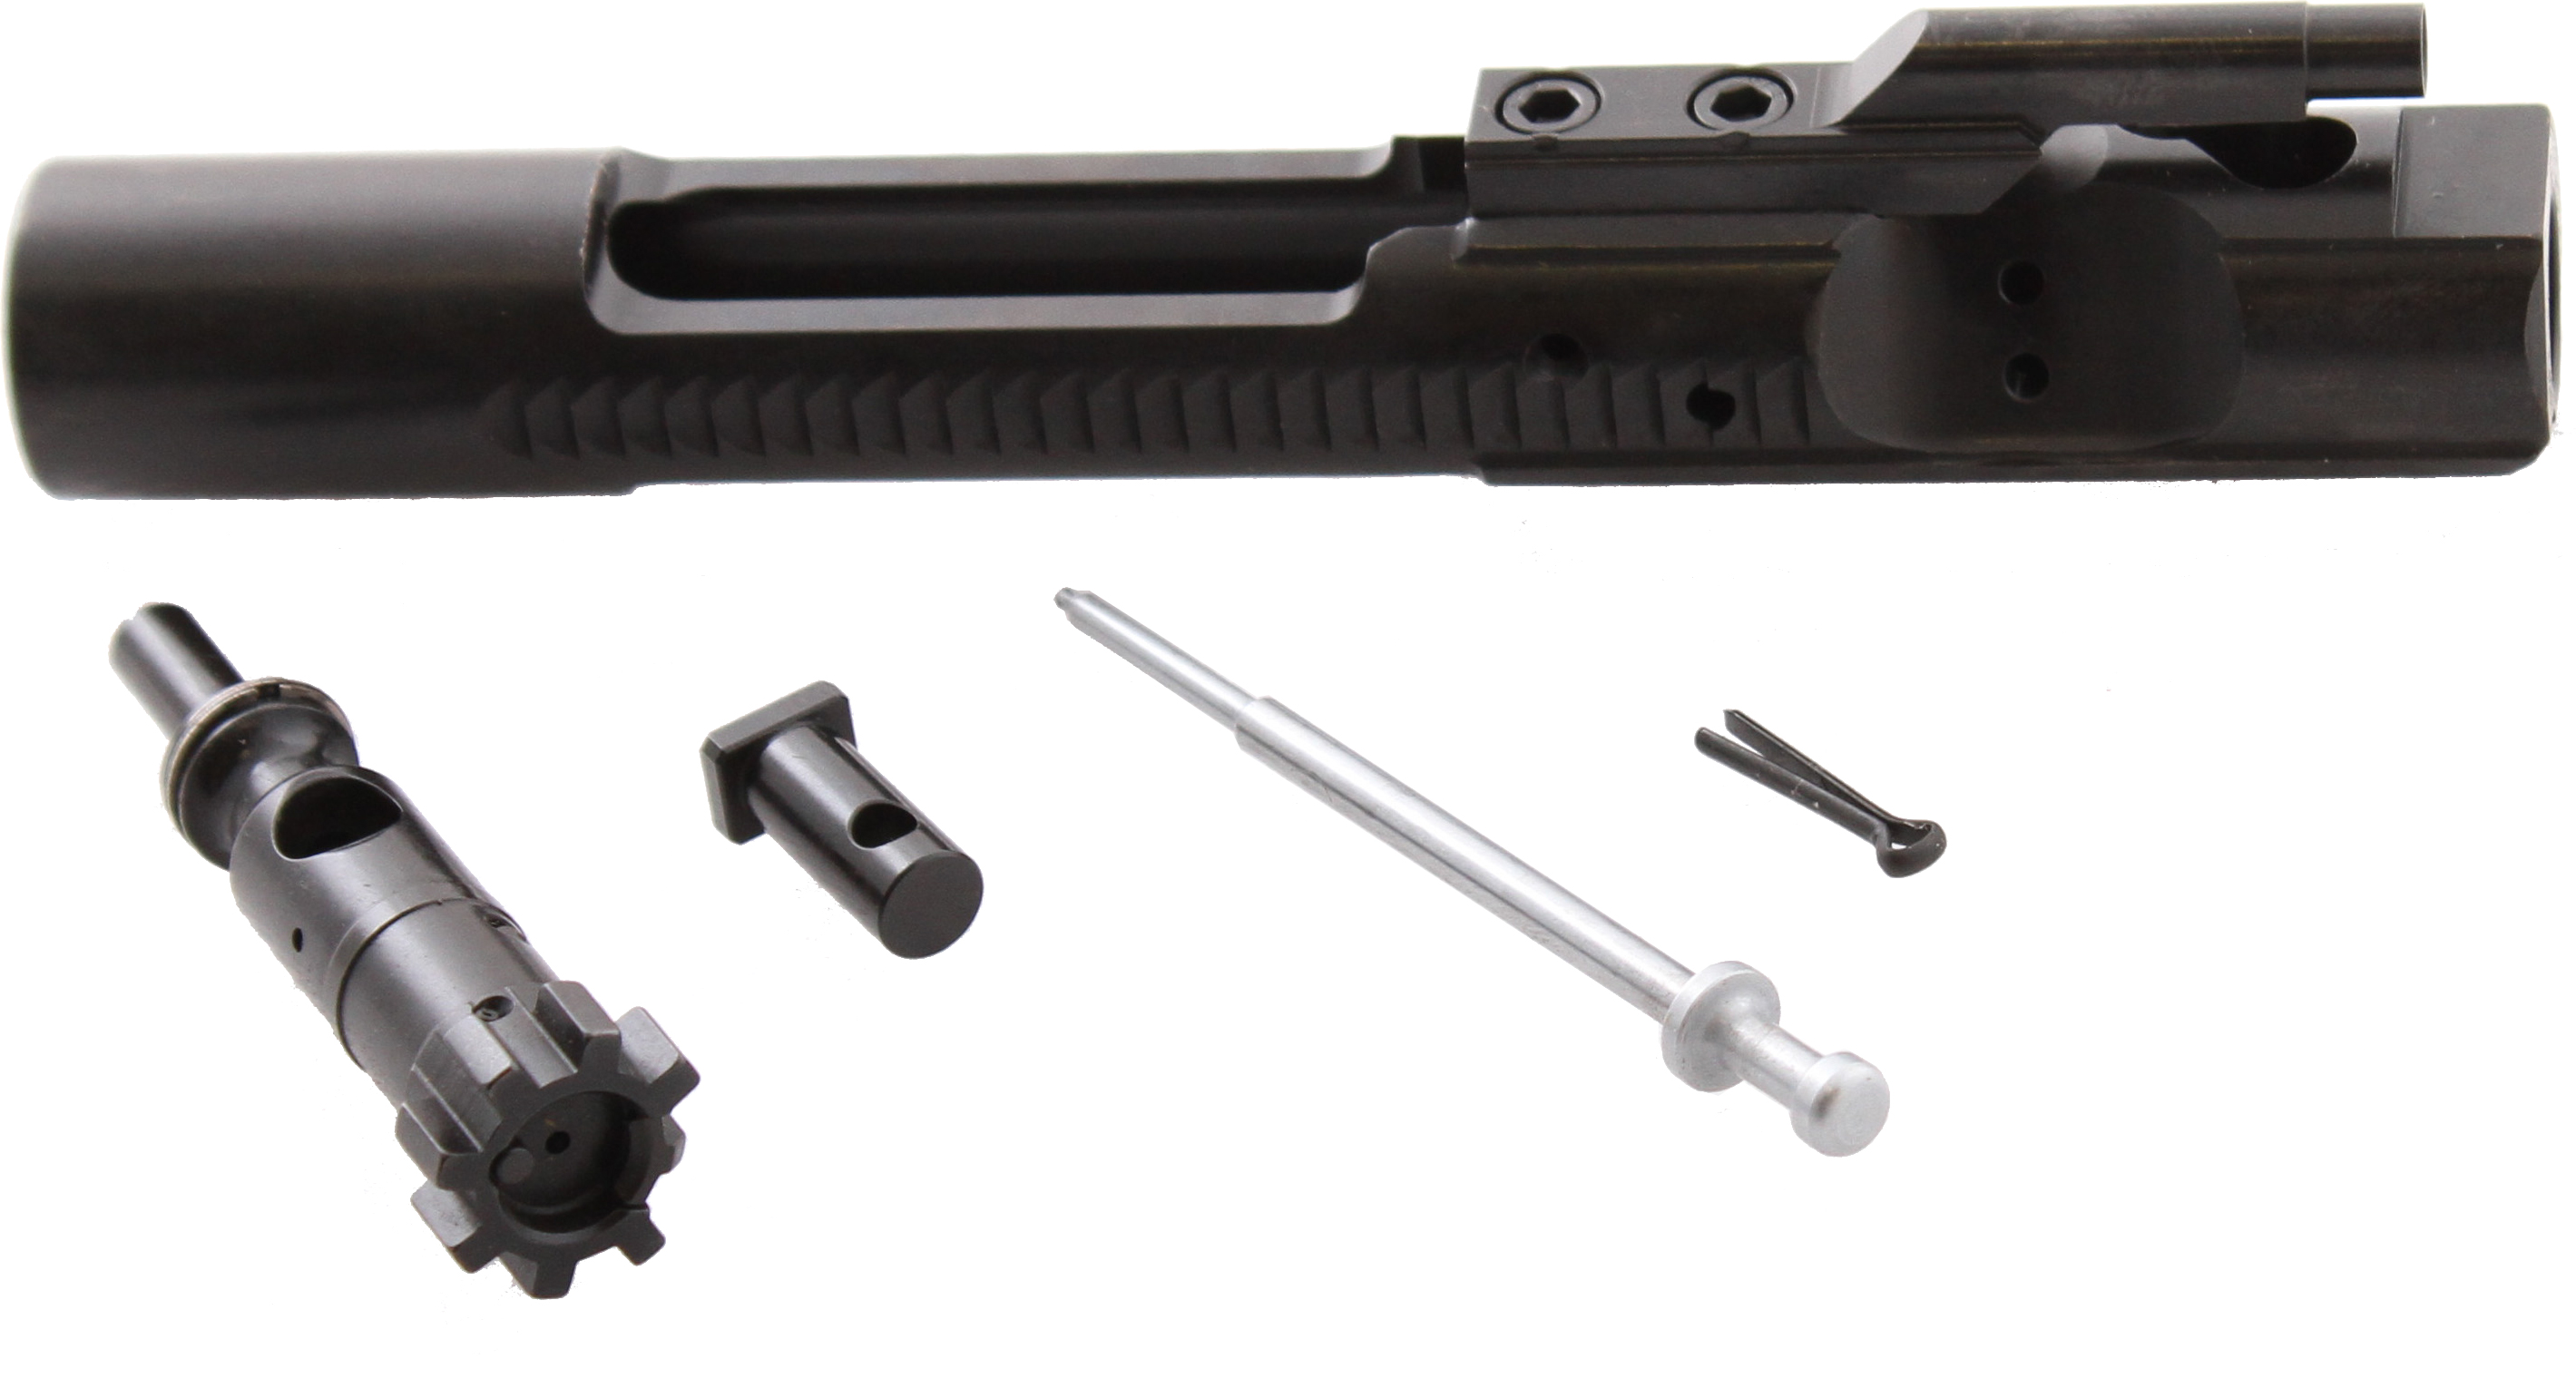 Fostech Outdoors Ar 15 Complete Bolt Carrier Group 5 Star Rating W Free Shipping And Handling